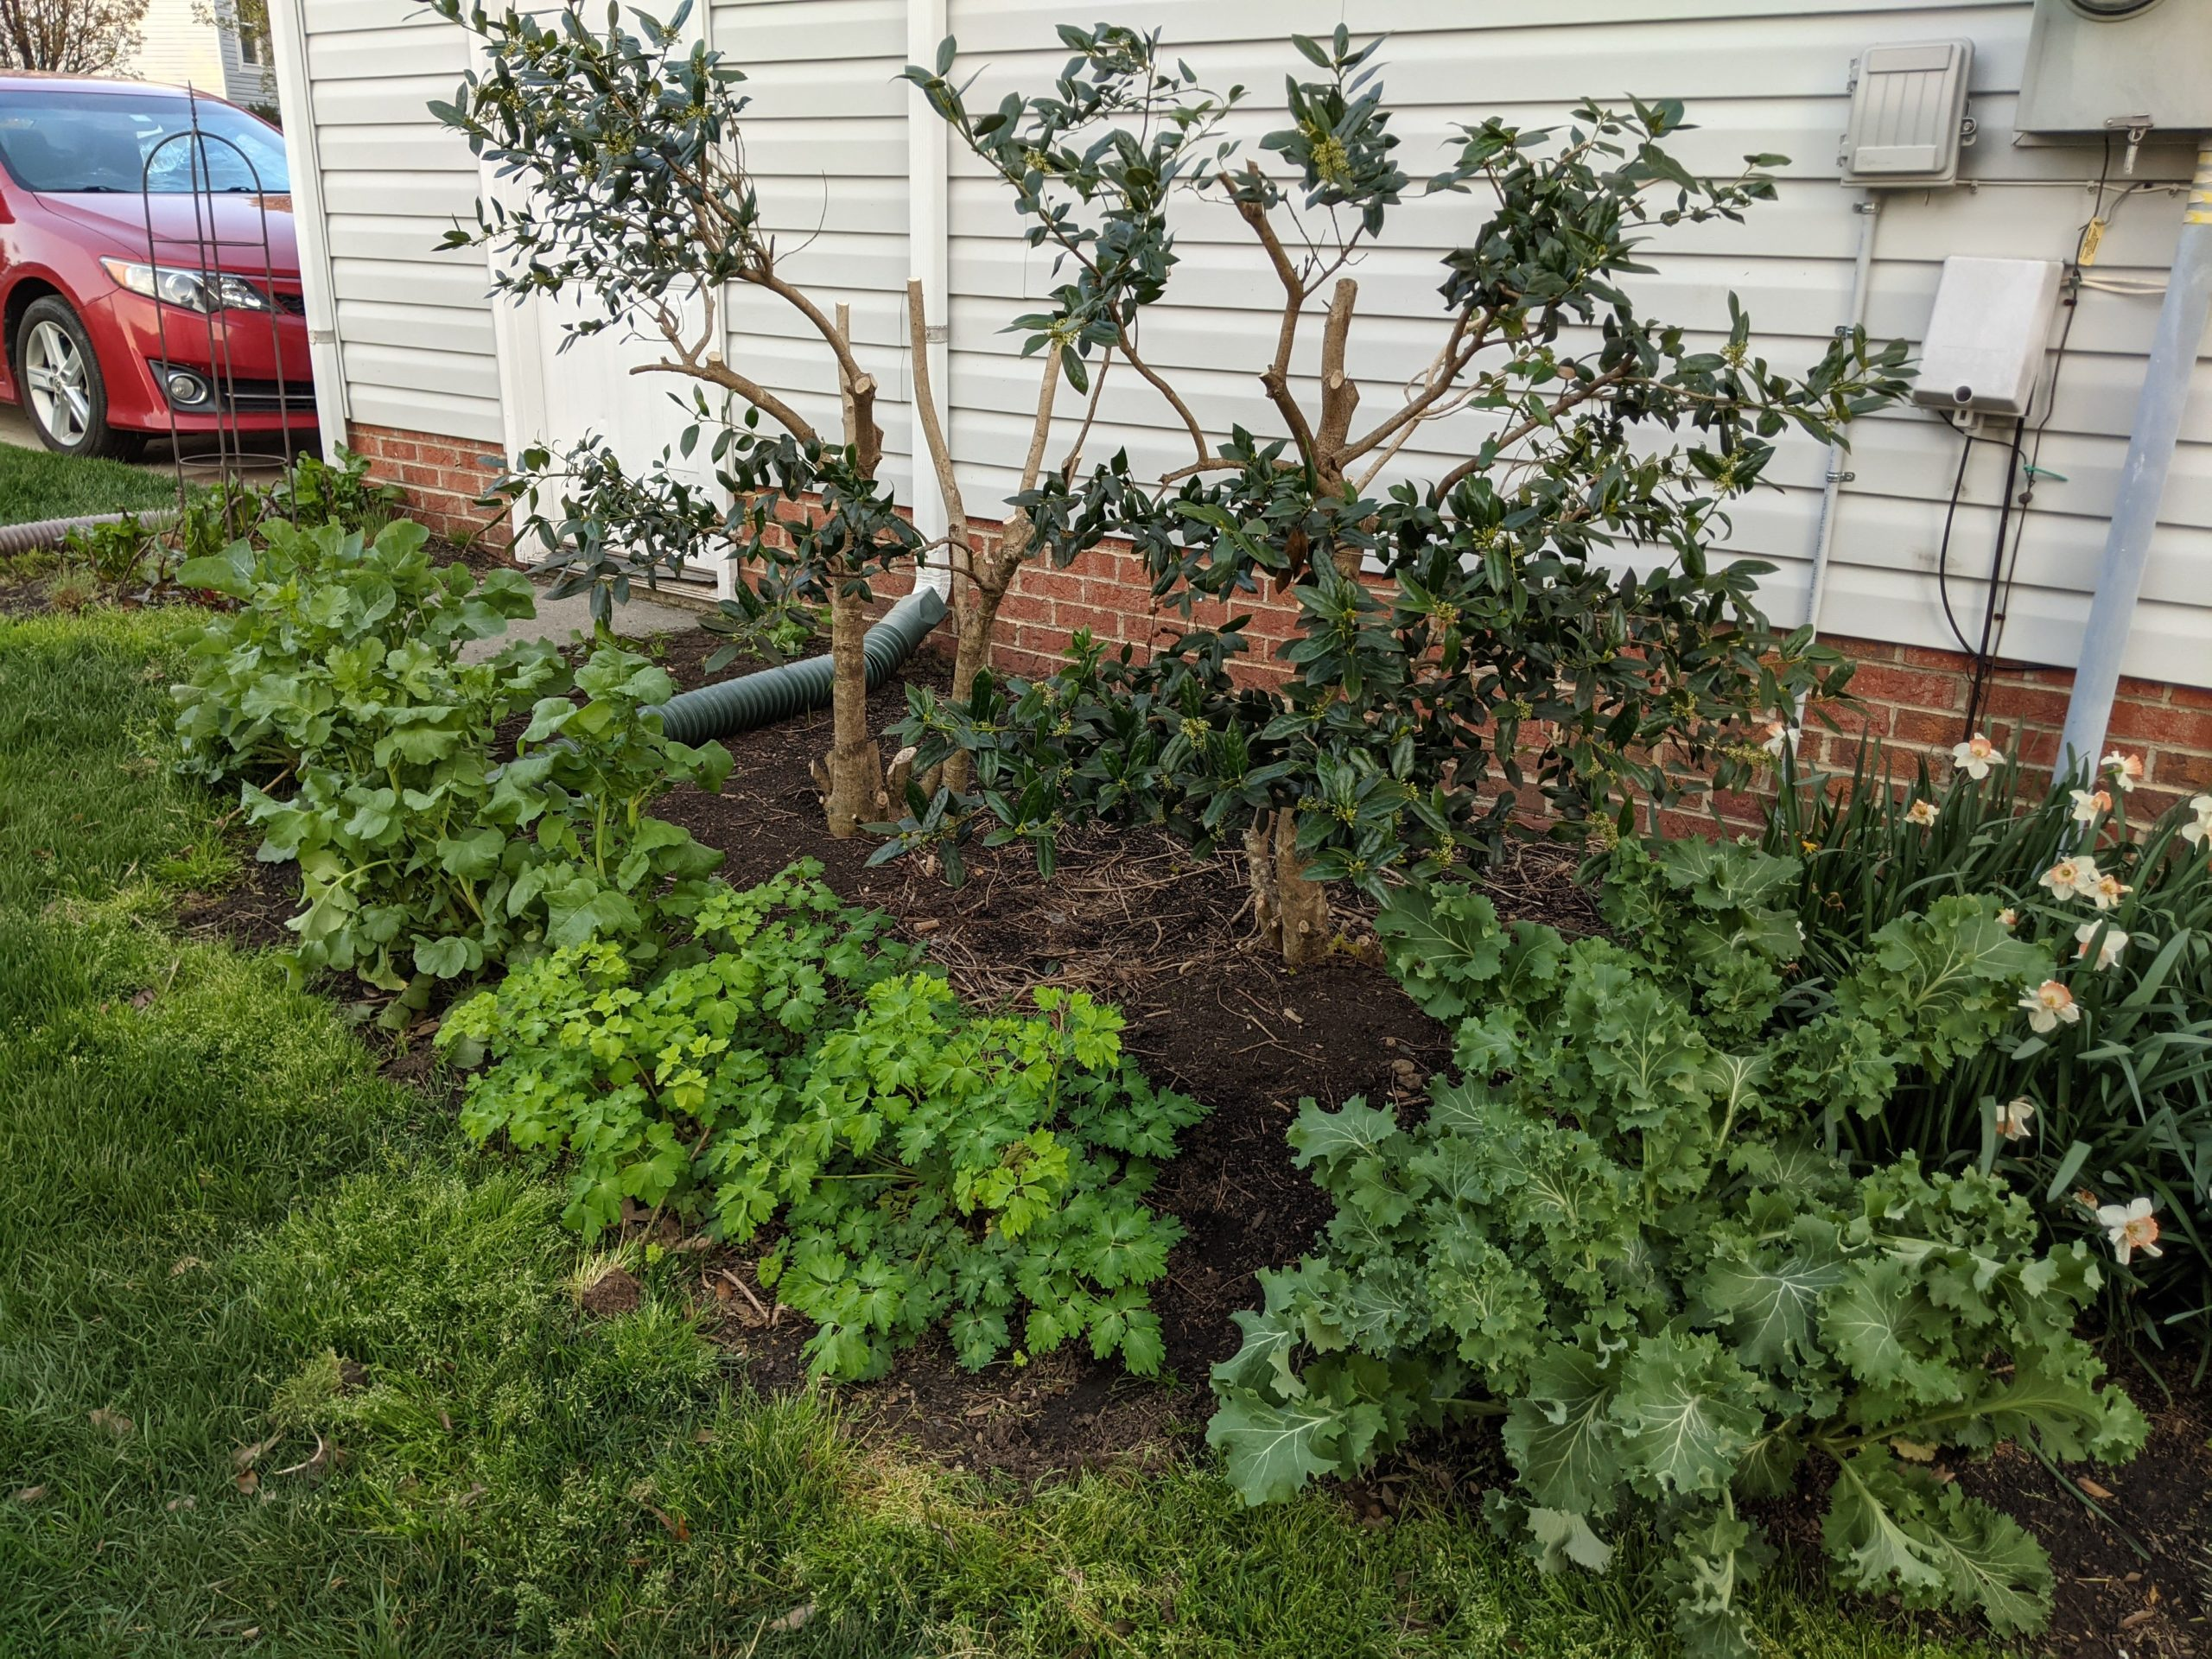 Did some heavy pruning of our holly bushes (I know, it looks really awful right now, but the plant was extremely unhealthy from years of using electric hedge shears). Around front are rutabagas, radishes, columbine, and kale I planted last fall.